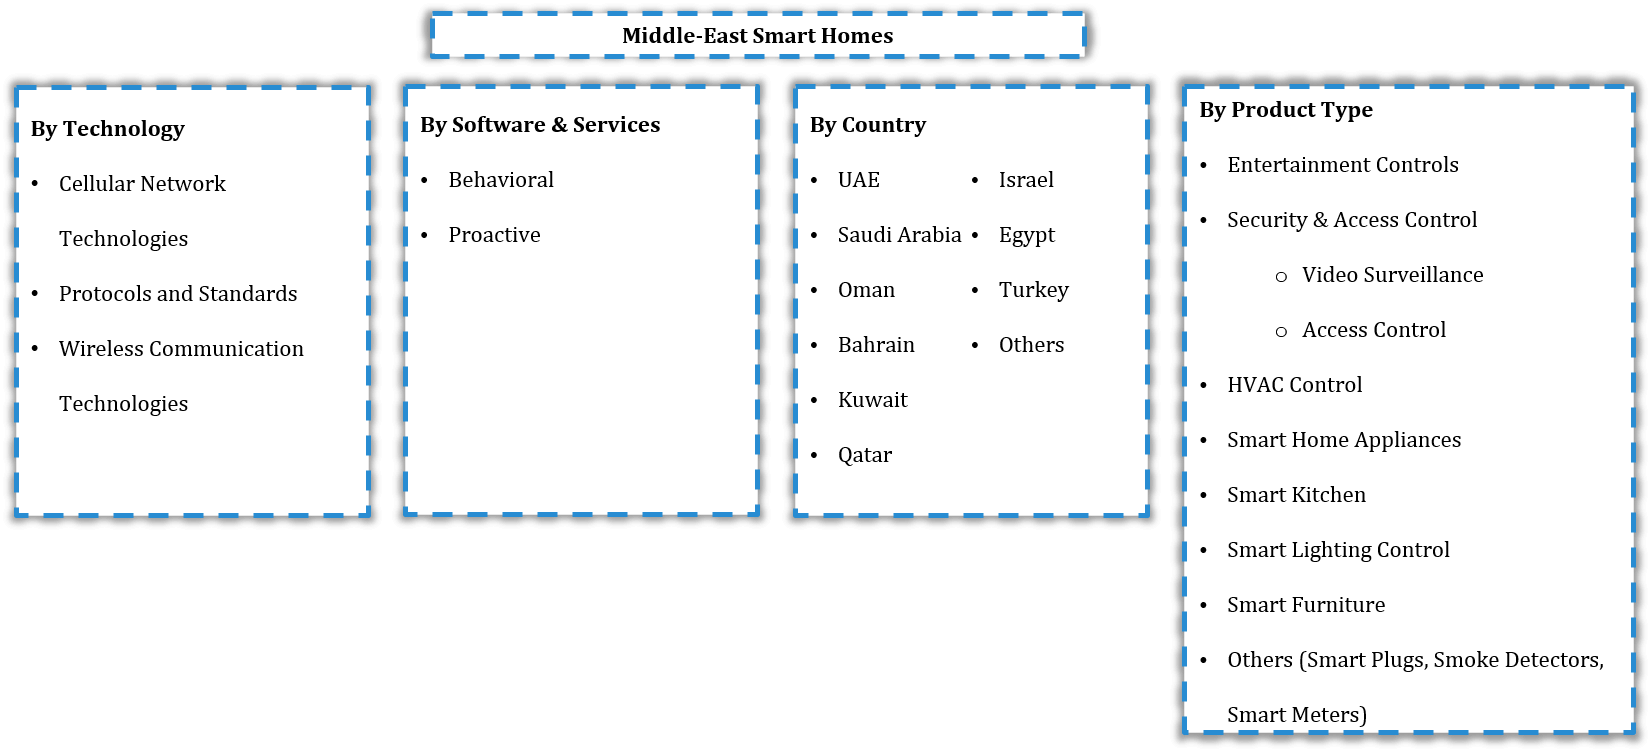 Middle East Smart Homes Market Segmentation